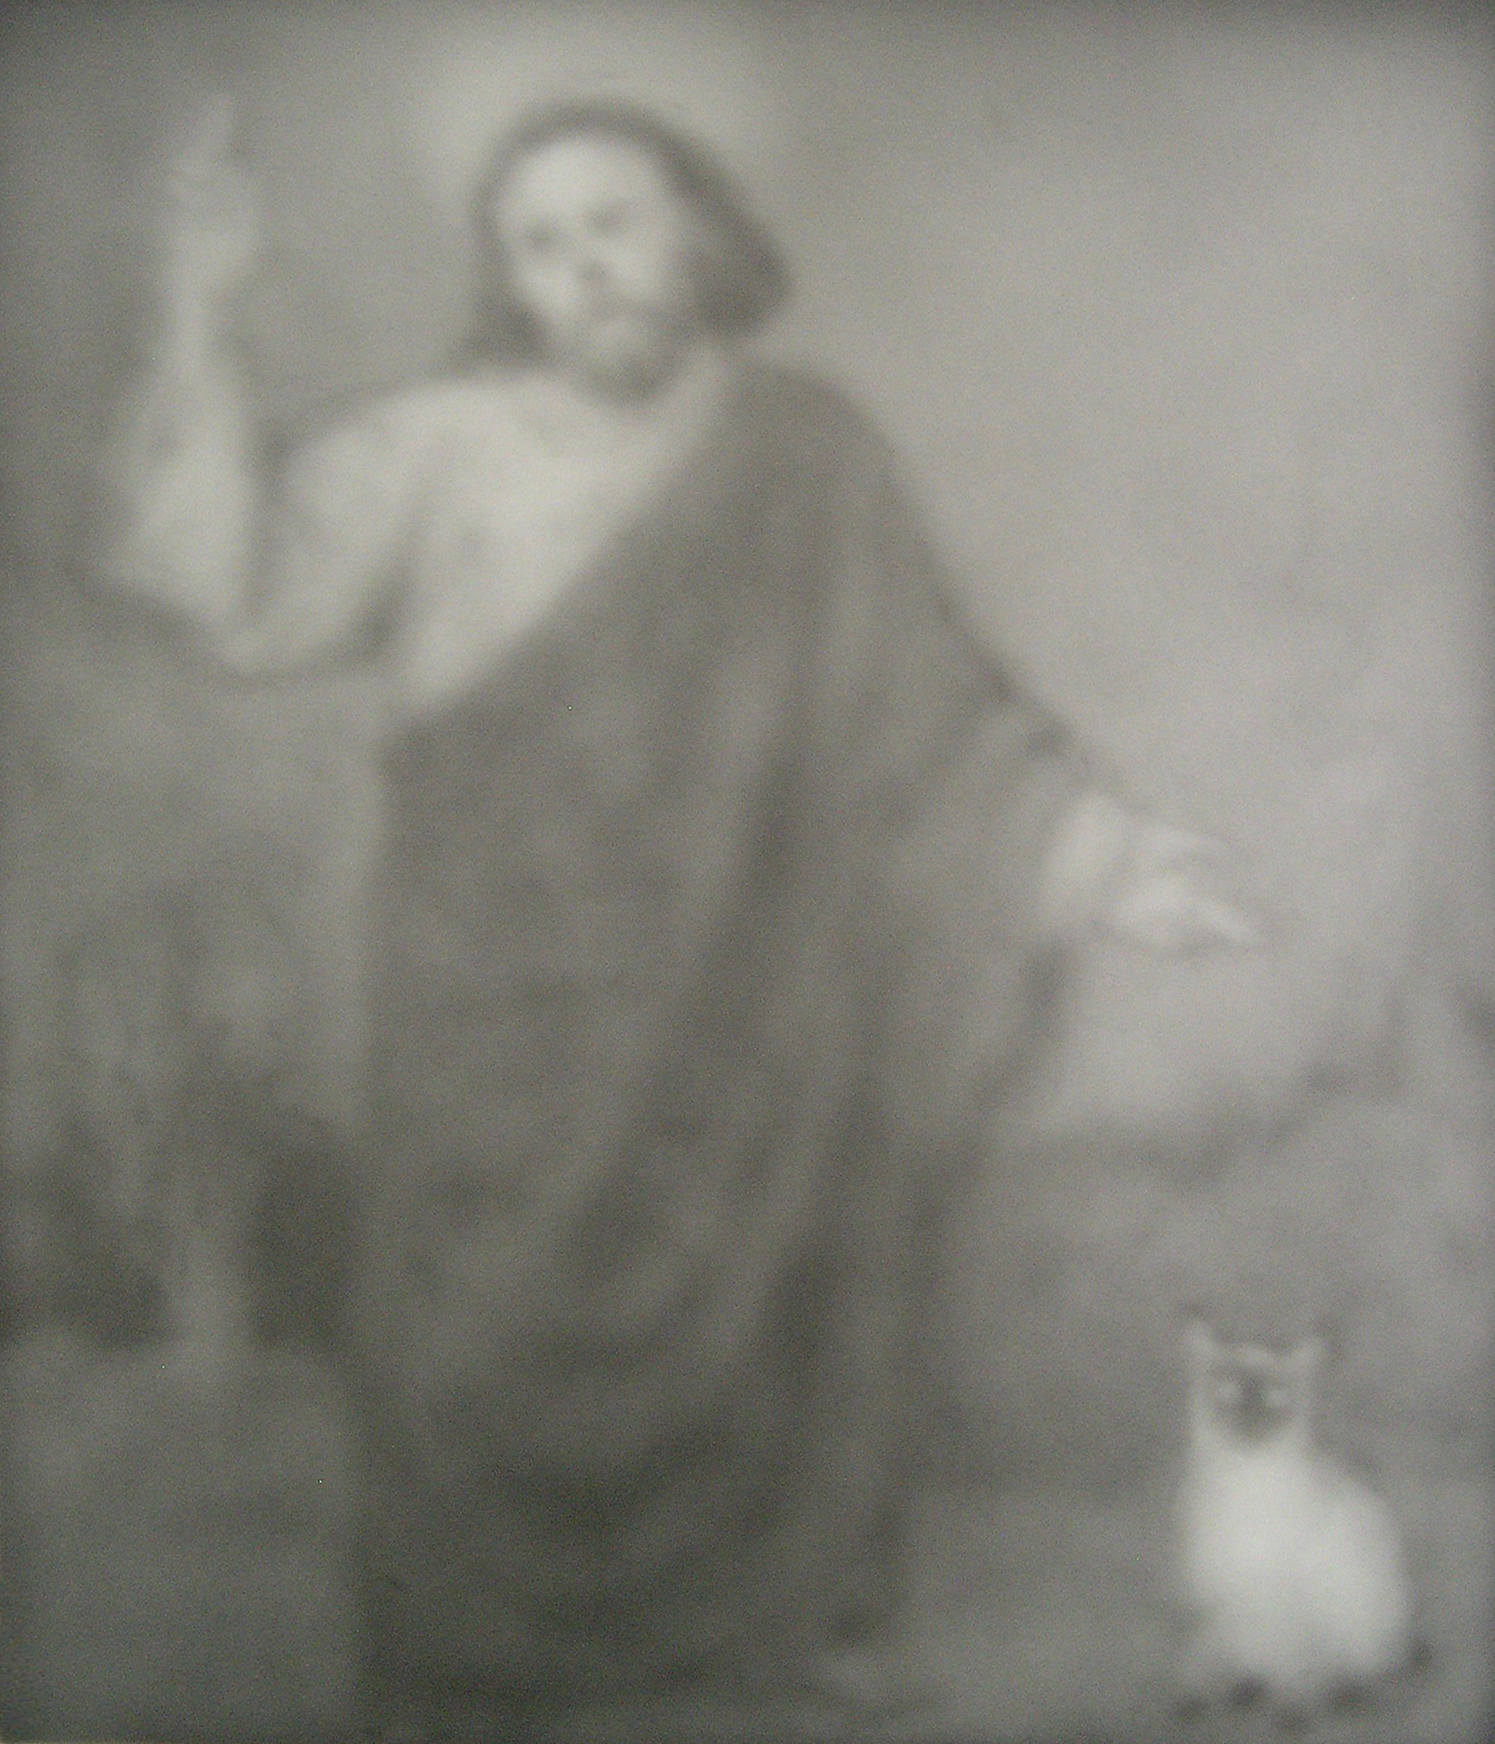 Christ Descending into Hell to Retrieve the Soul of an Unruly Cat